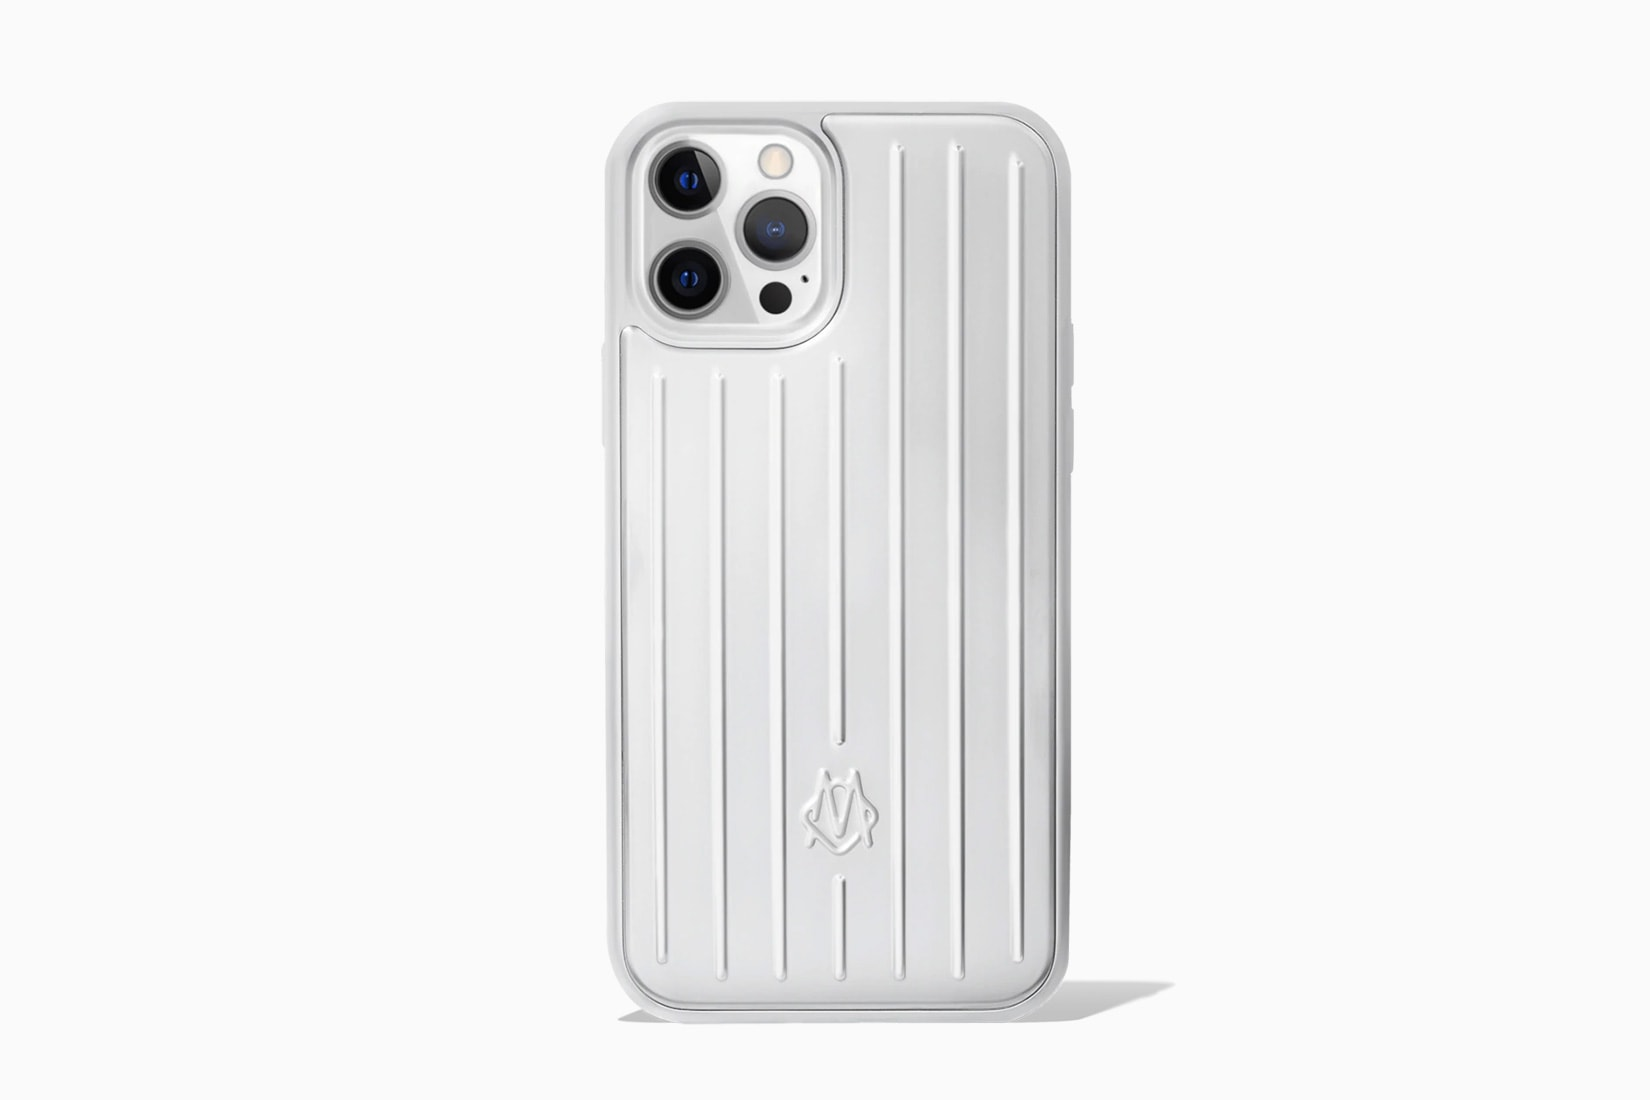 best iphone case premium rimowa silver review - Luxe Digital